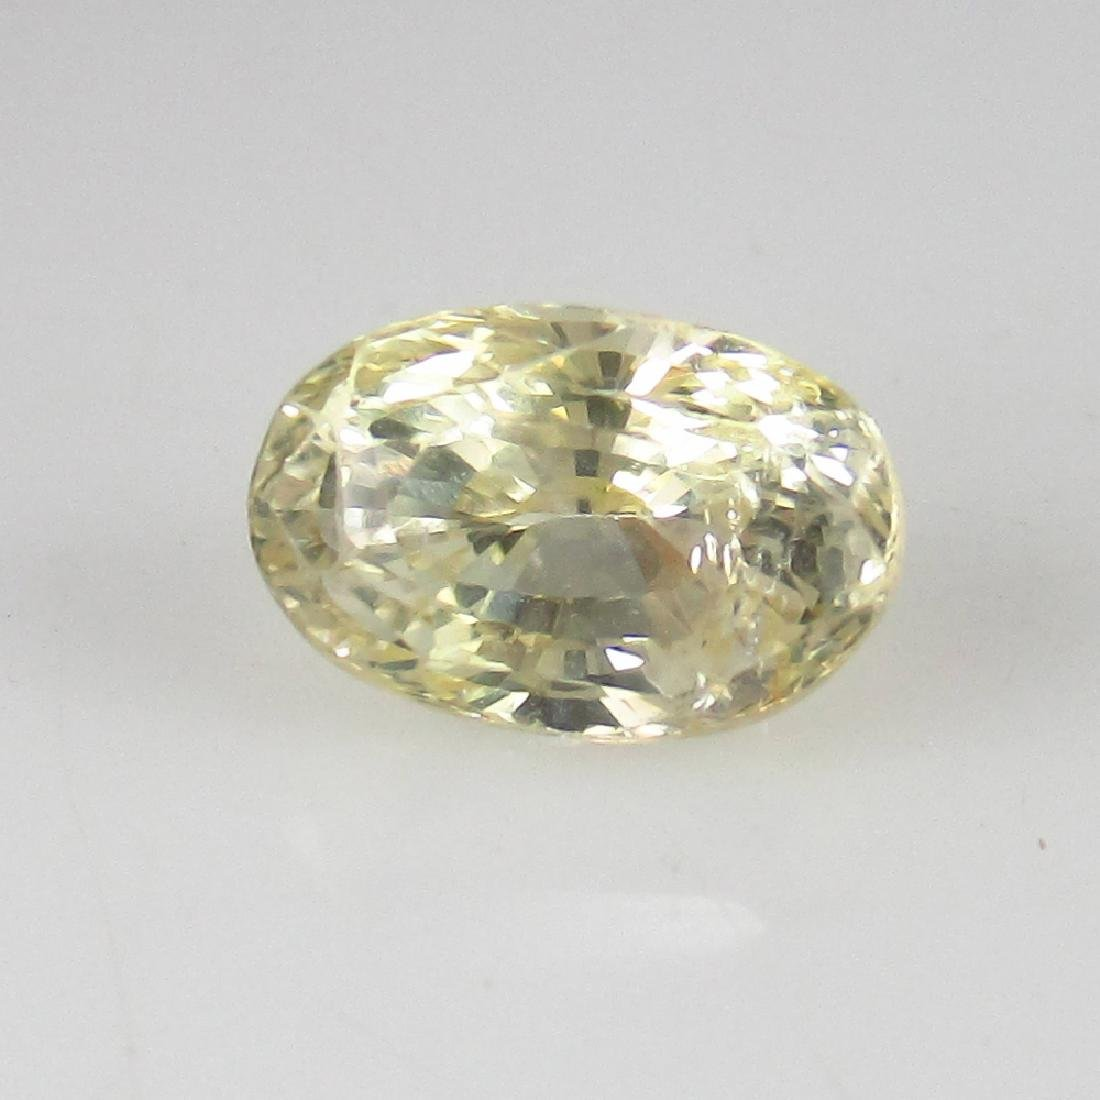 1.28 Ct Genuine IGI Certified Sri Lanka Yellow Sapphire